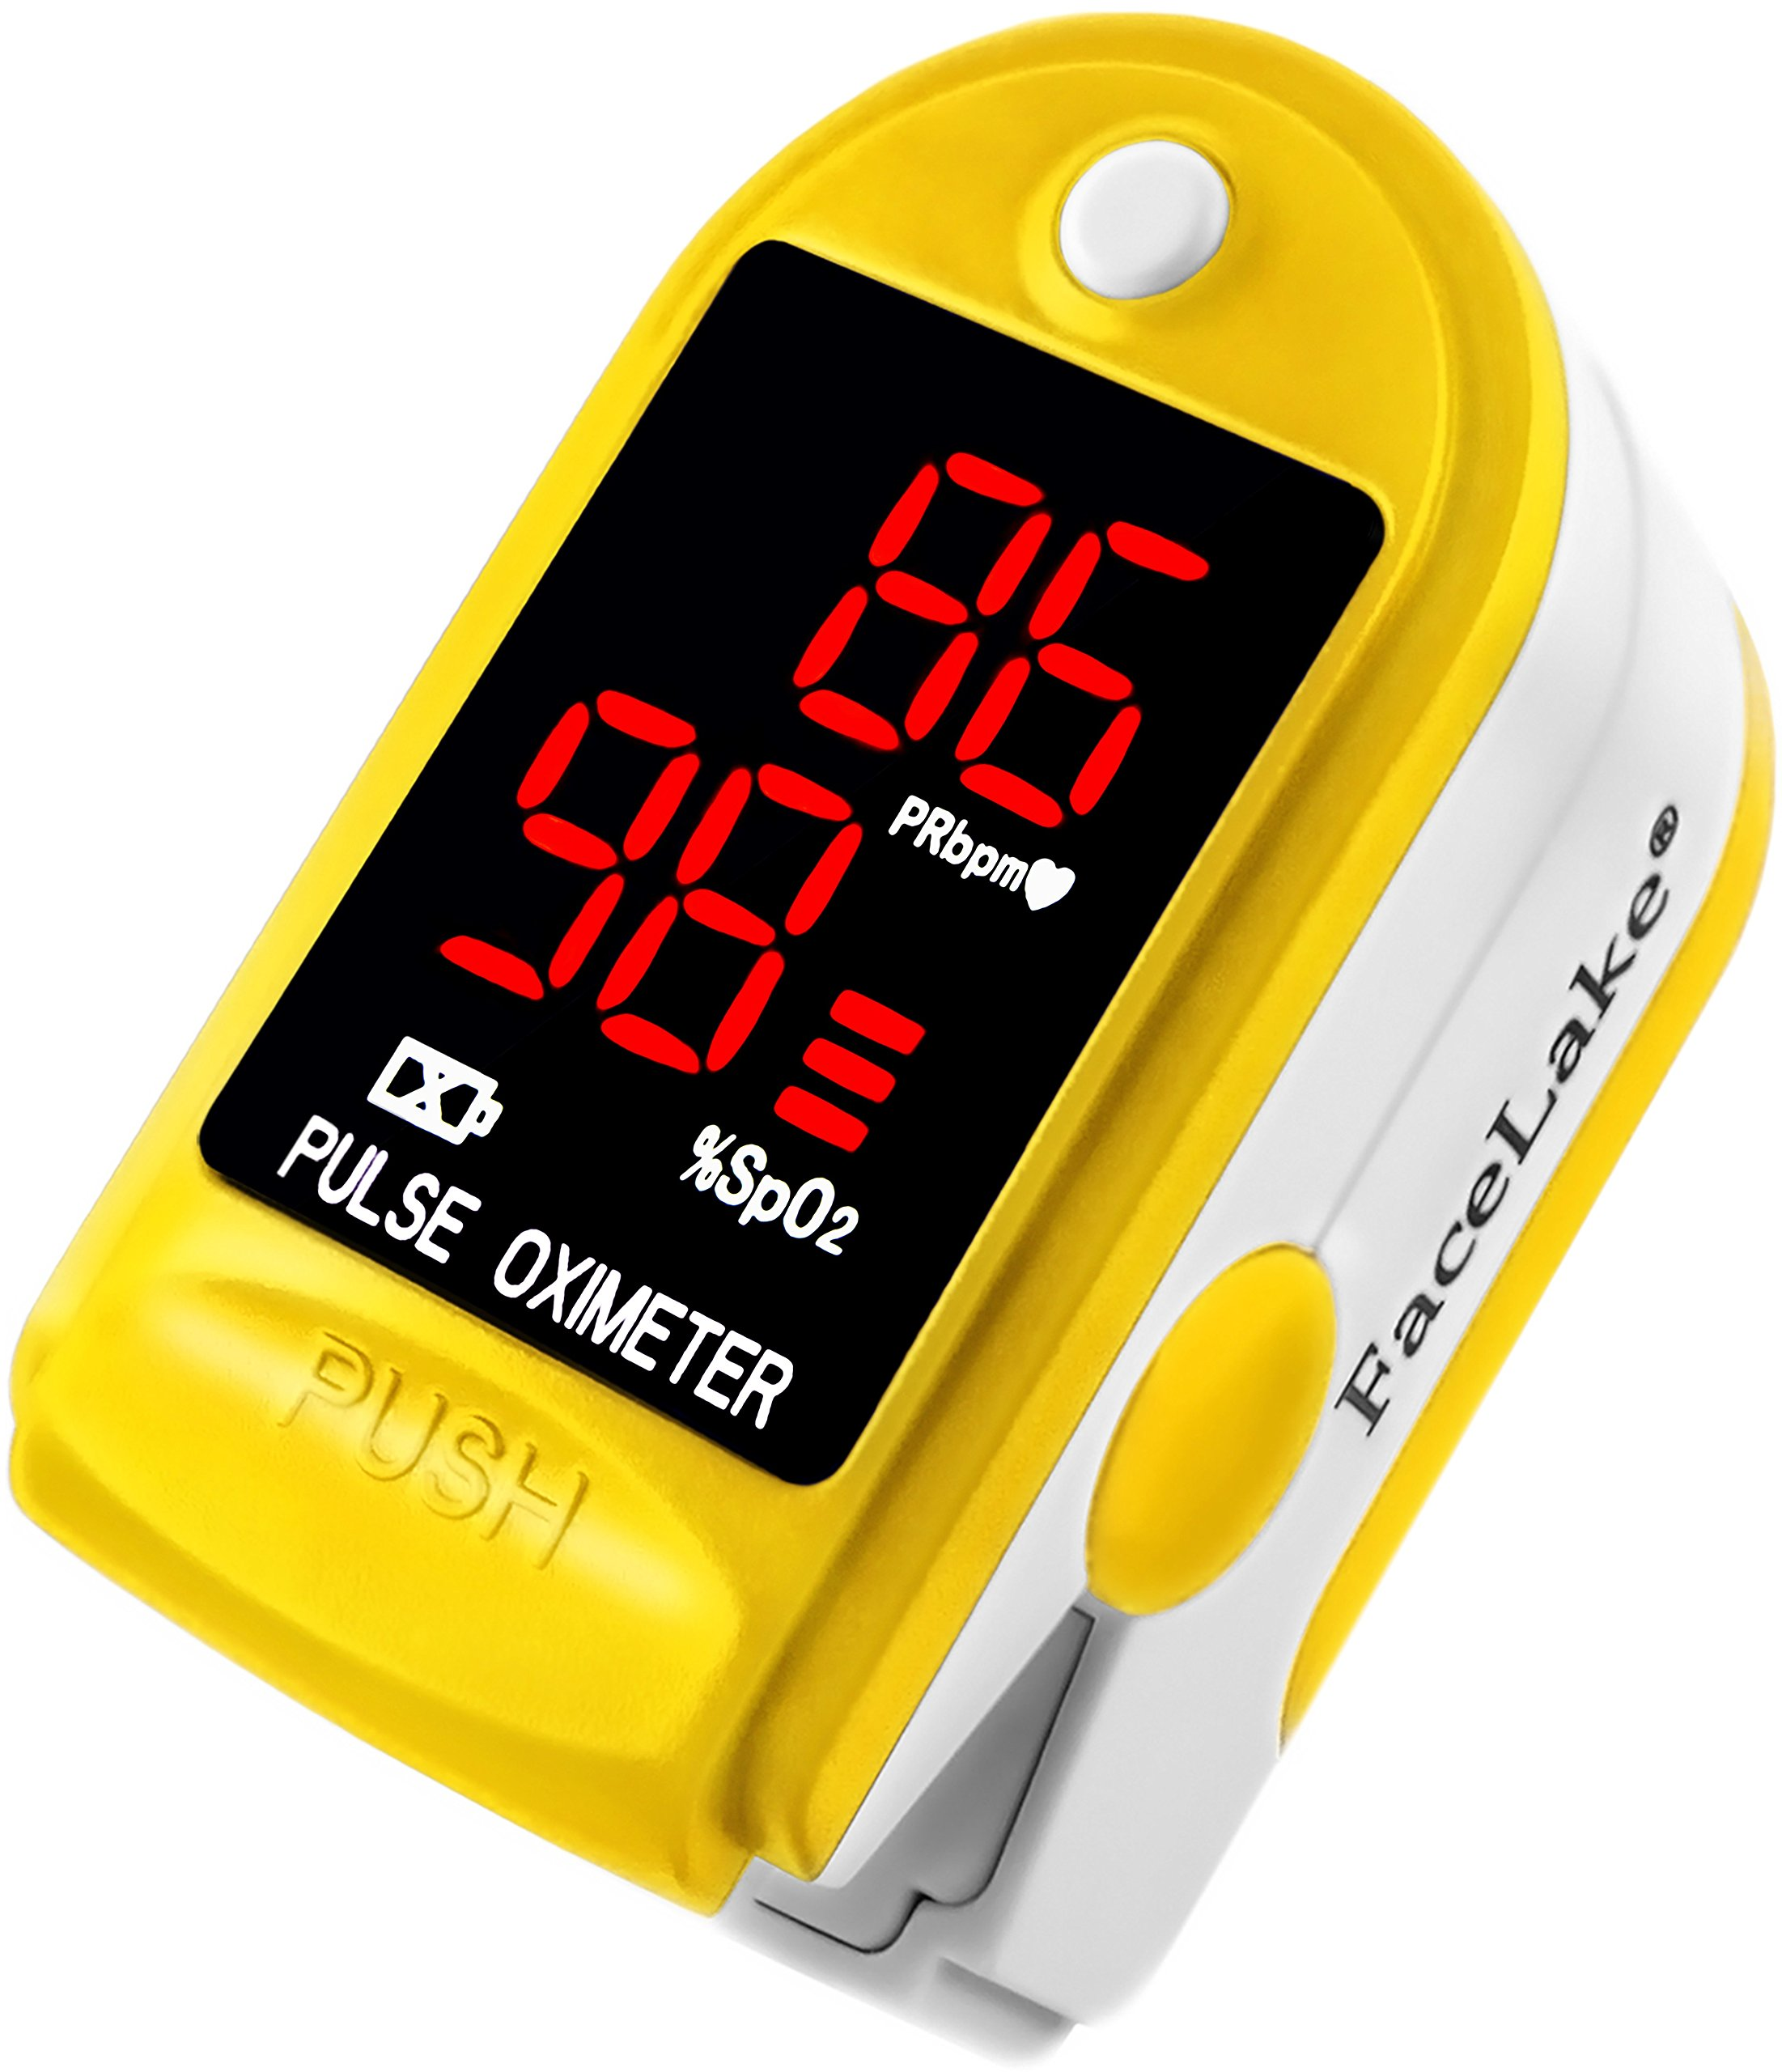 Lotfancy® (CE FDA Approved) -- Portable Sports and Aviation Finger Pulse Oximeter OX Spo2 Fingertip Oxygen Digital Monitor -- SPO2 / PR (Pulse rate) / Pulse Intensity value Display -- (Can be used in such Sports activities: Mountain Climbing, High-Altitu